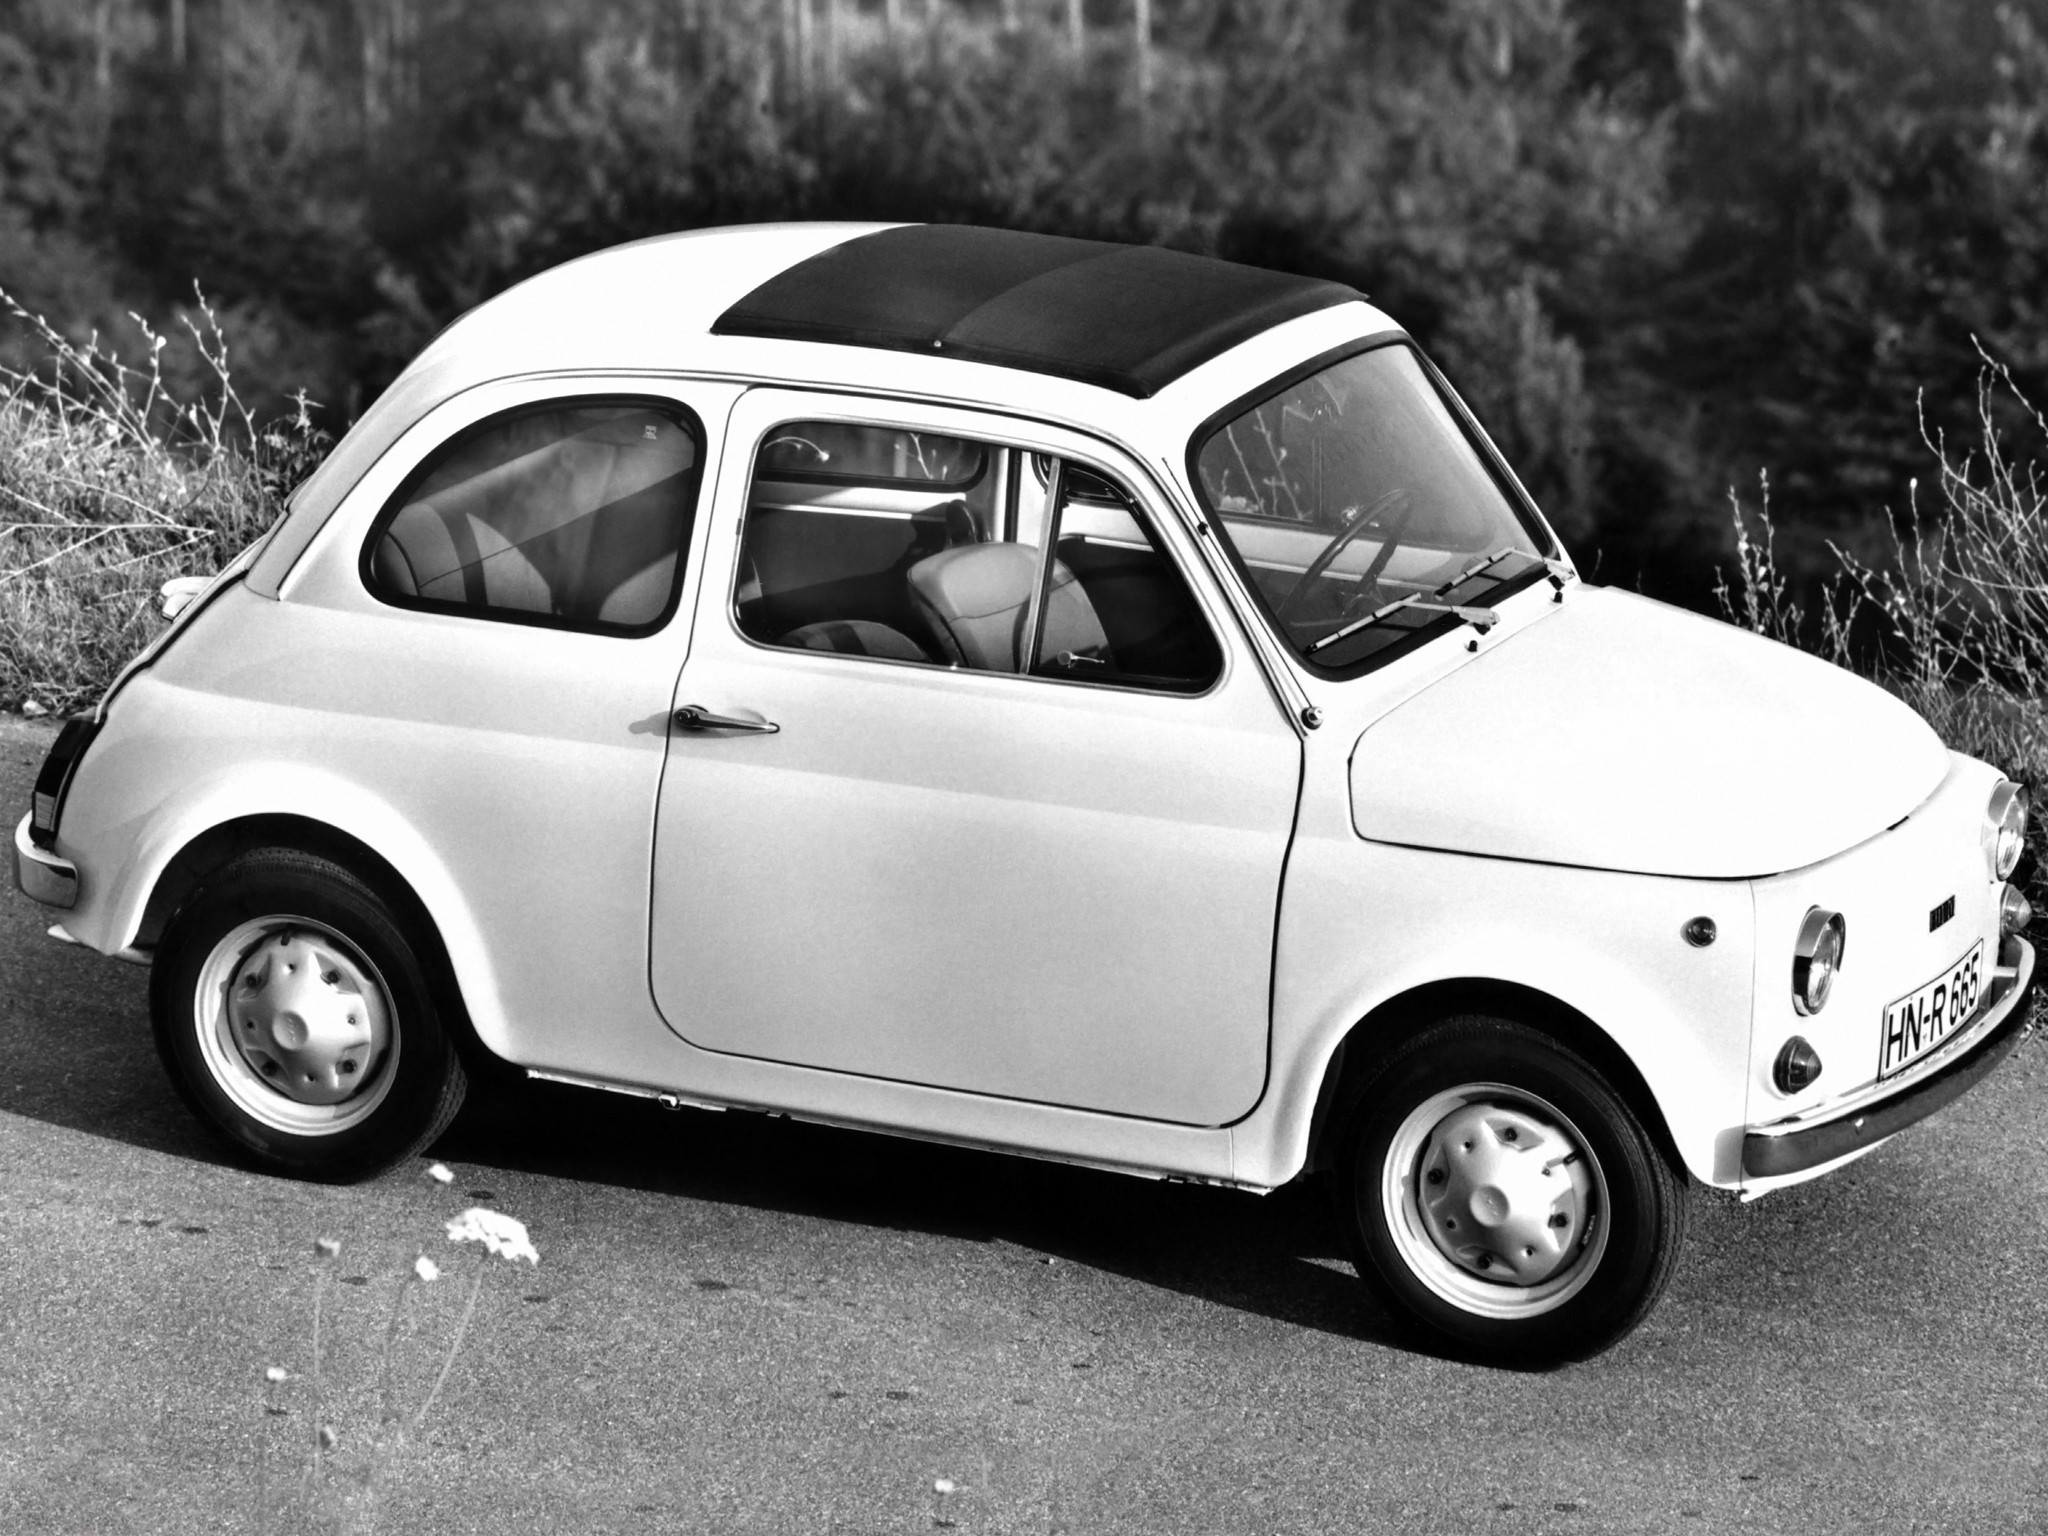 fiat 500 r rinnovata specs 1972 1973 1974 1975 autoevolution. Black Bedroom Furniture Sets. Home Design Ideas